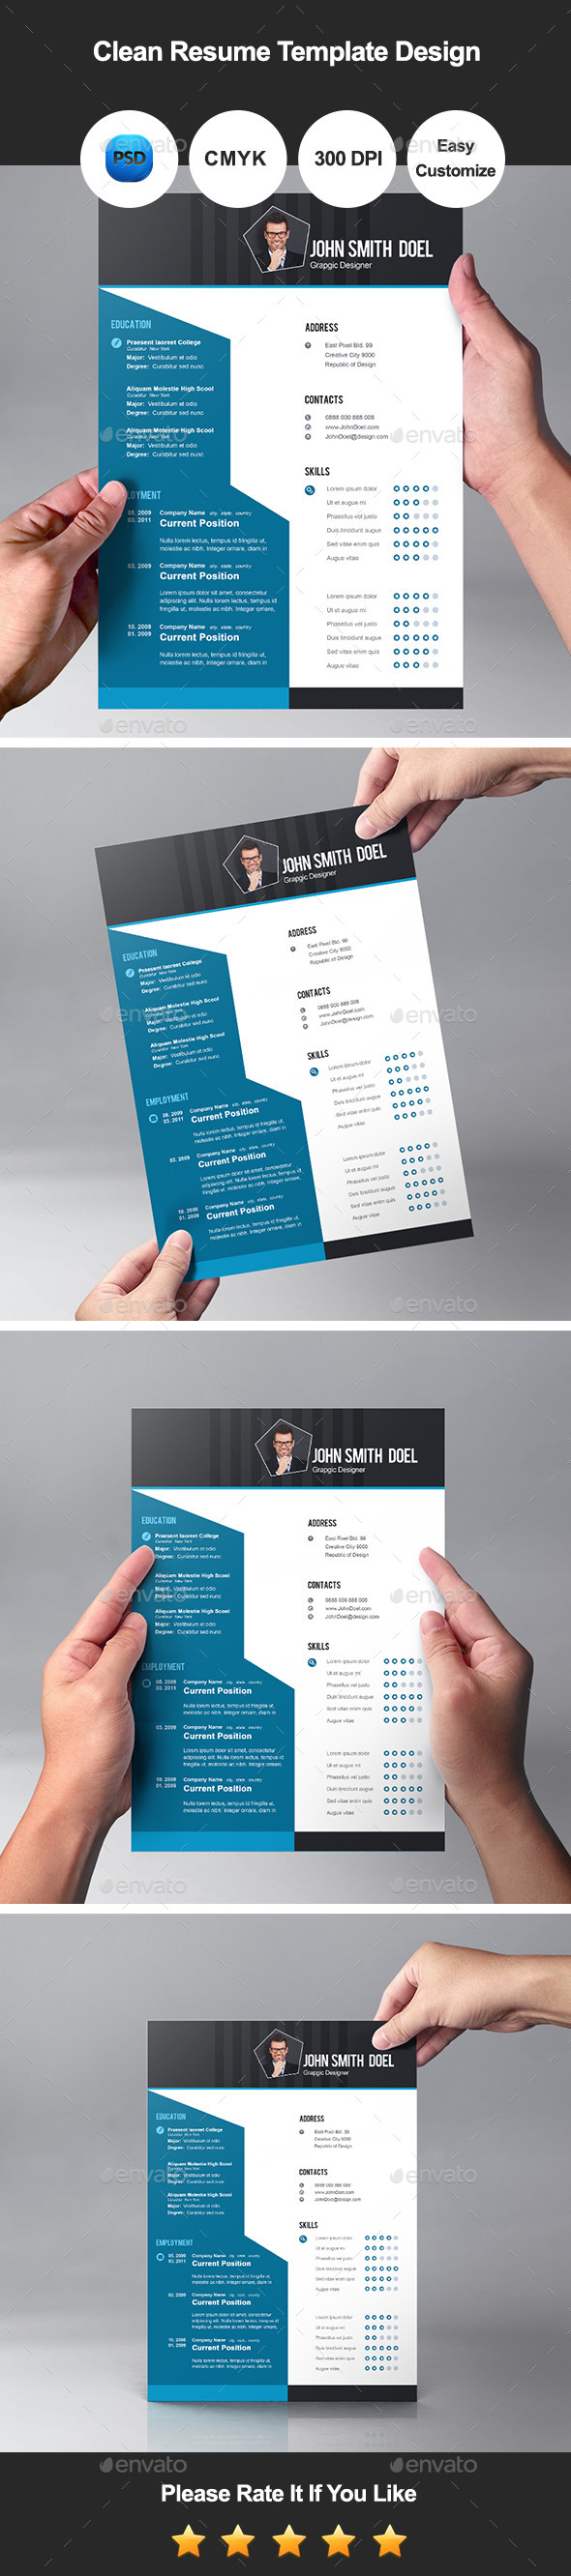 Clean Resume Template Design - Resumes Stationery